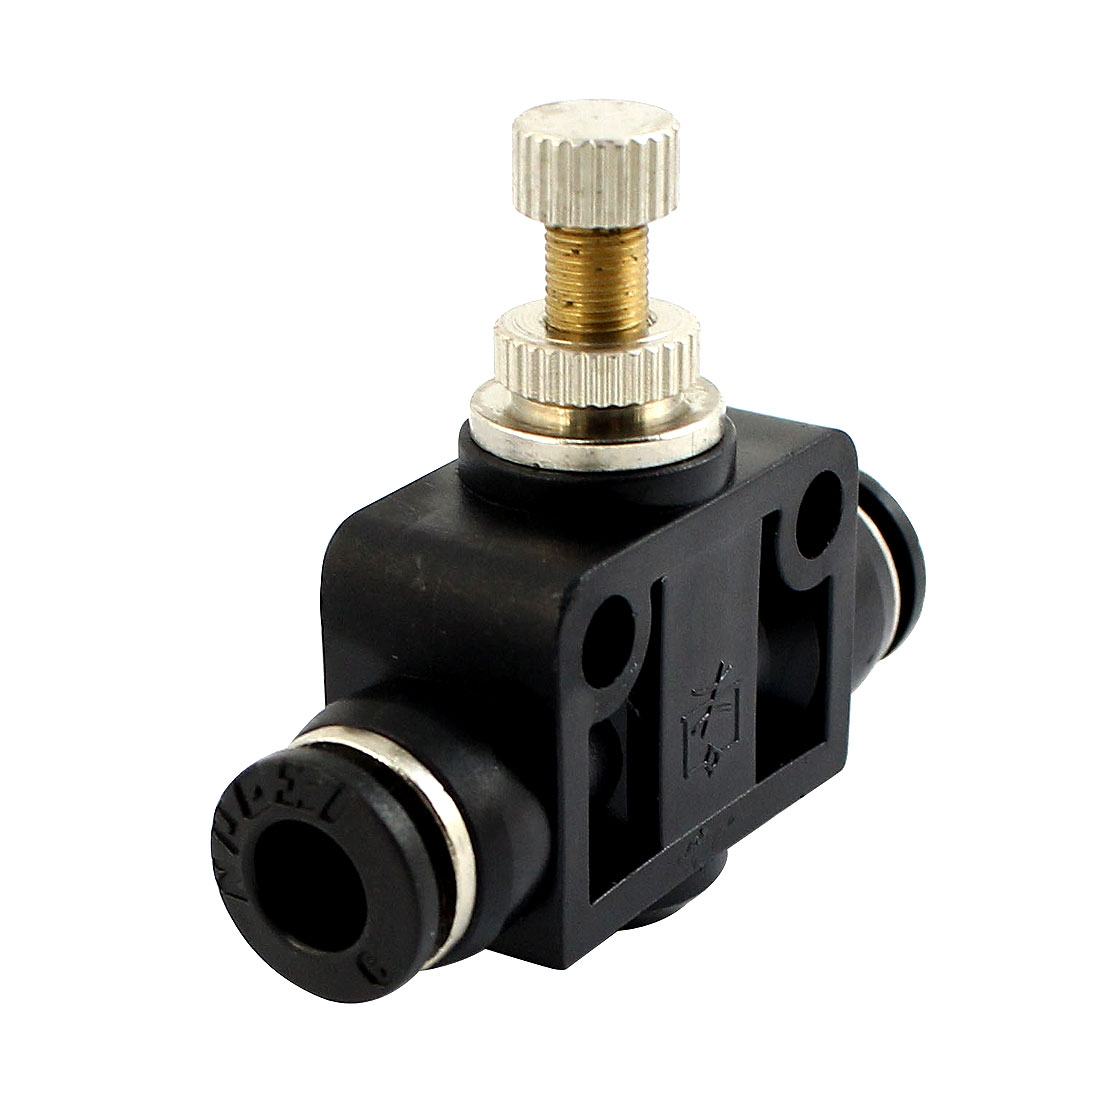 6mm to 6mm Push in Tube 2 Way T Shaped Air Pneumatic Quick Release Fitting Connector Speed Controller